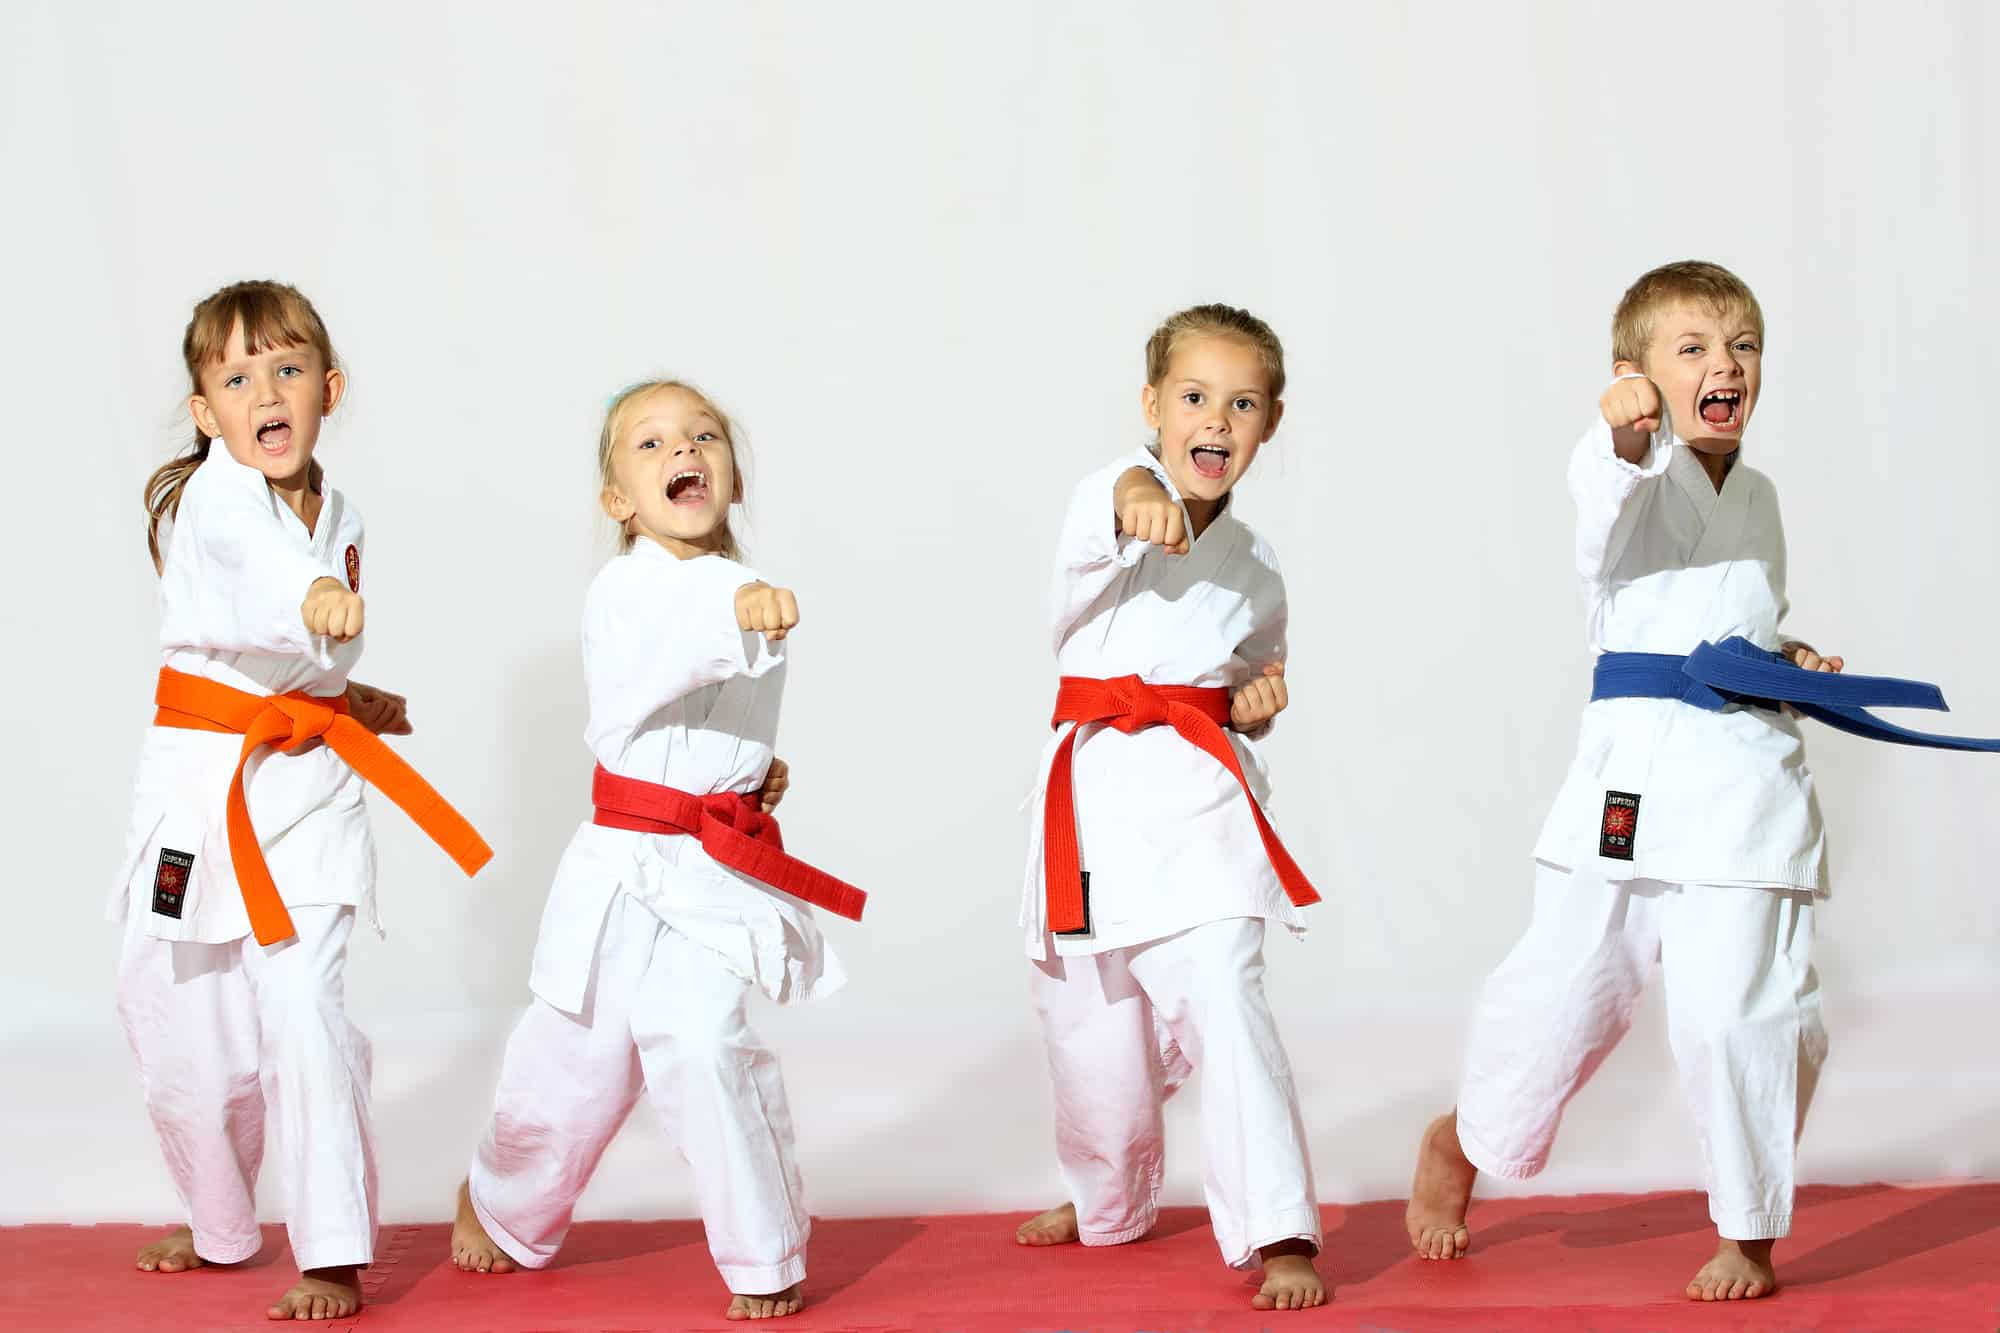 Kids participate in a karate class